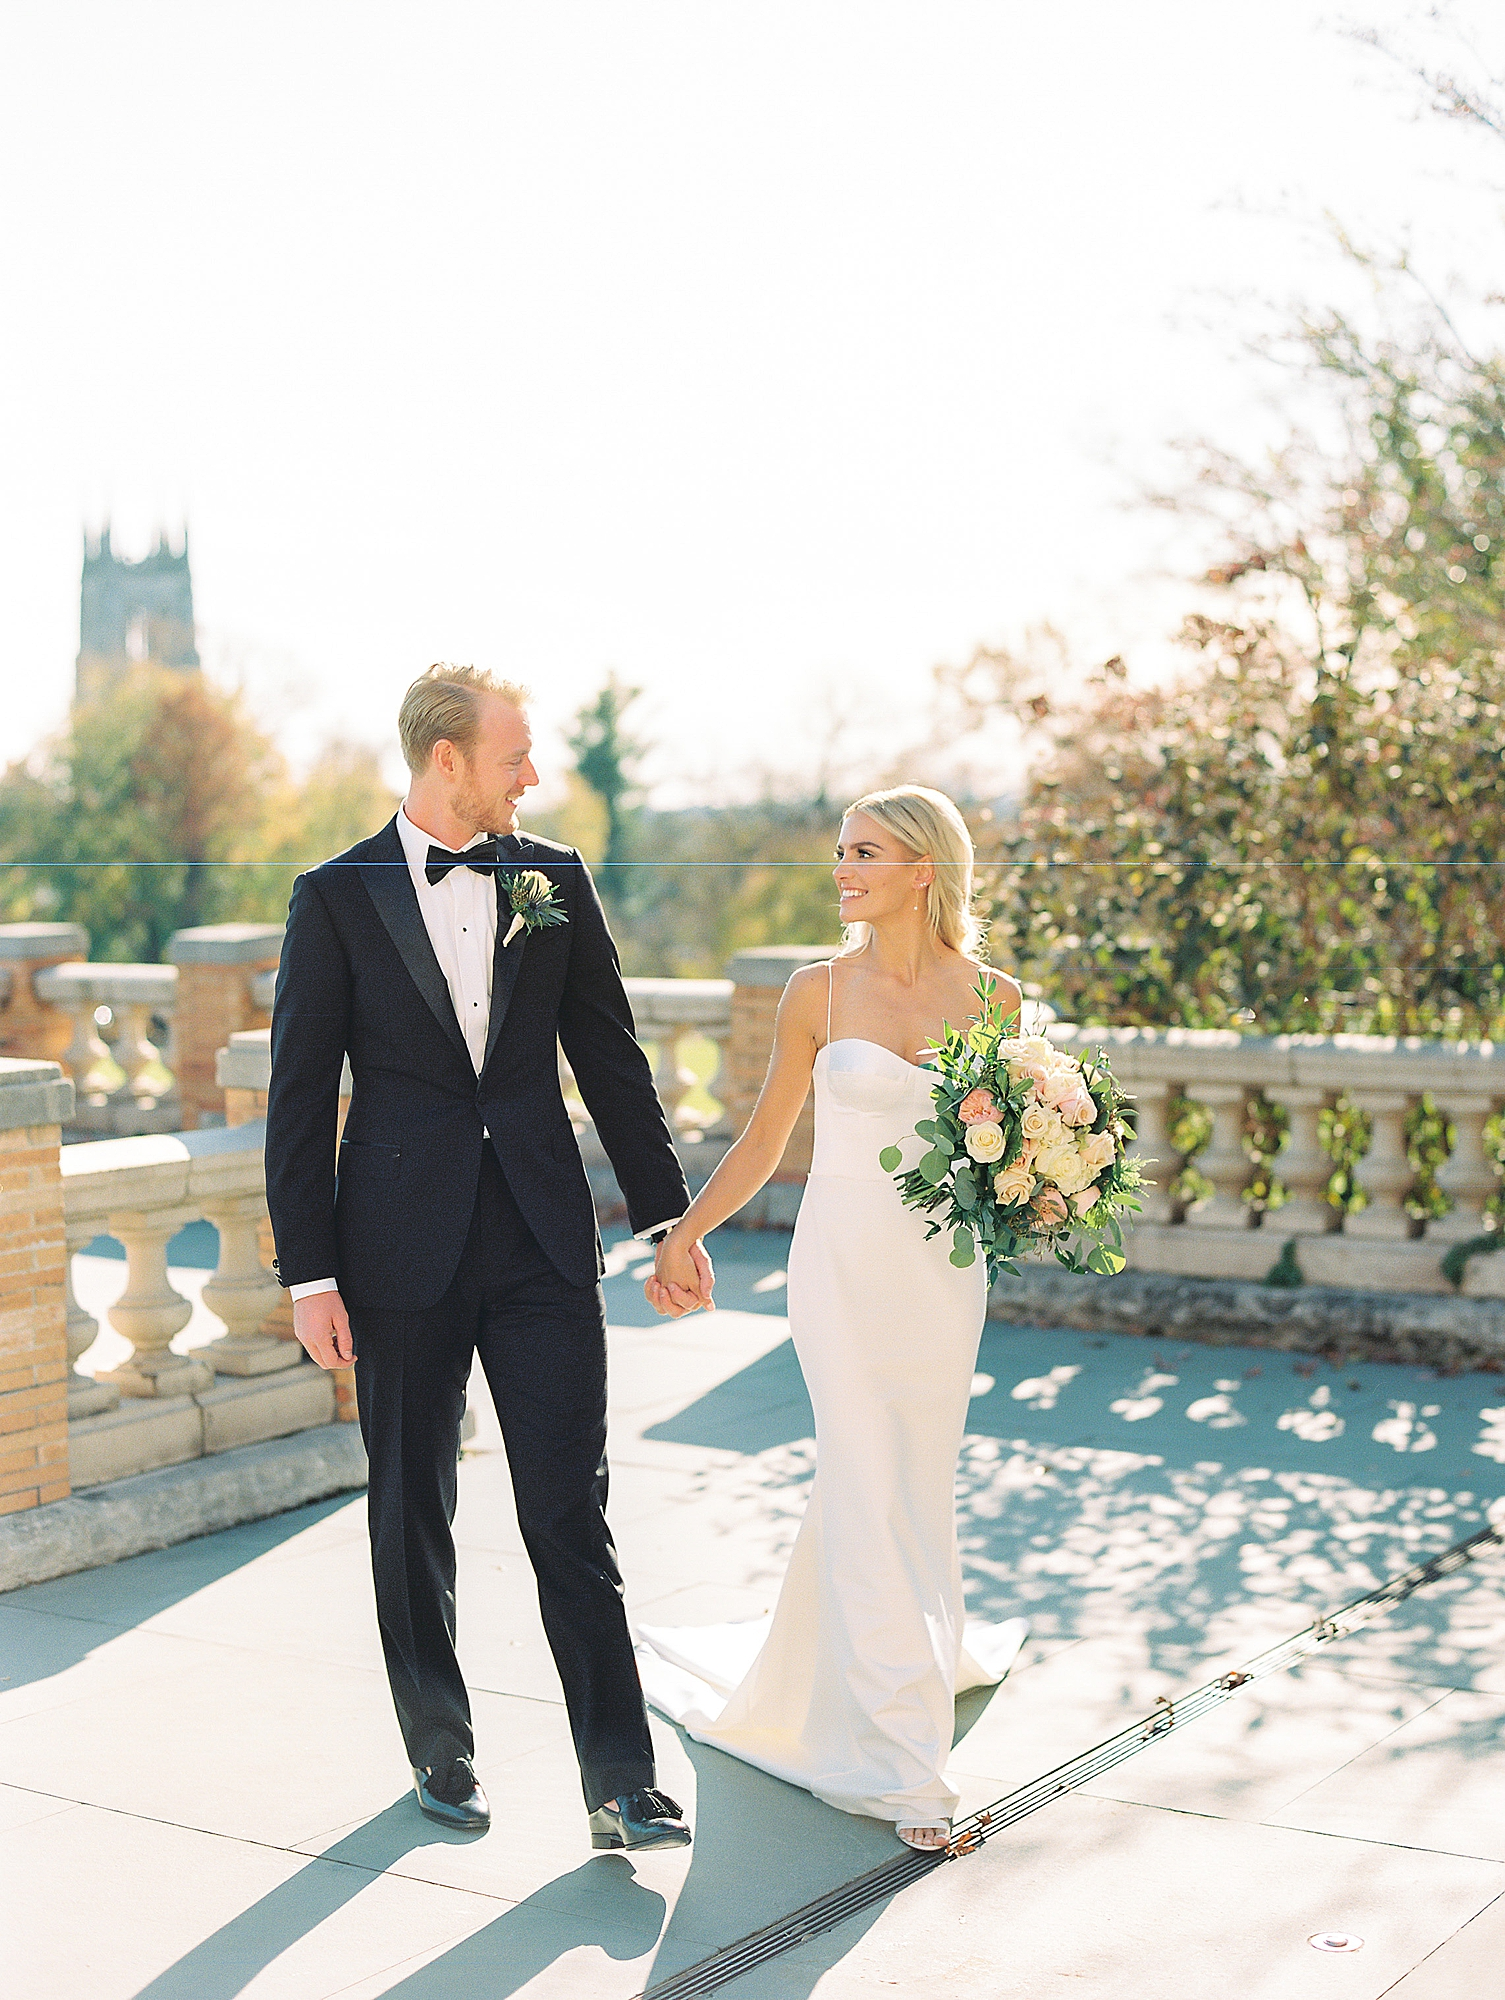 Film Wedding Photography at Cairnwood Estate by Magdalena Studios 0022